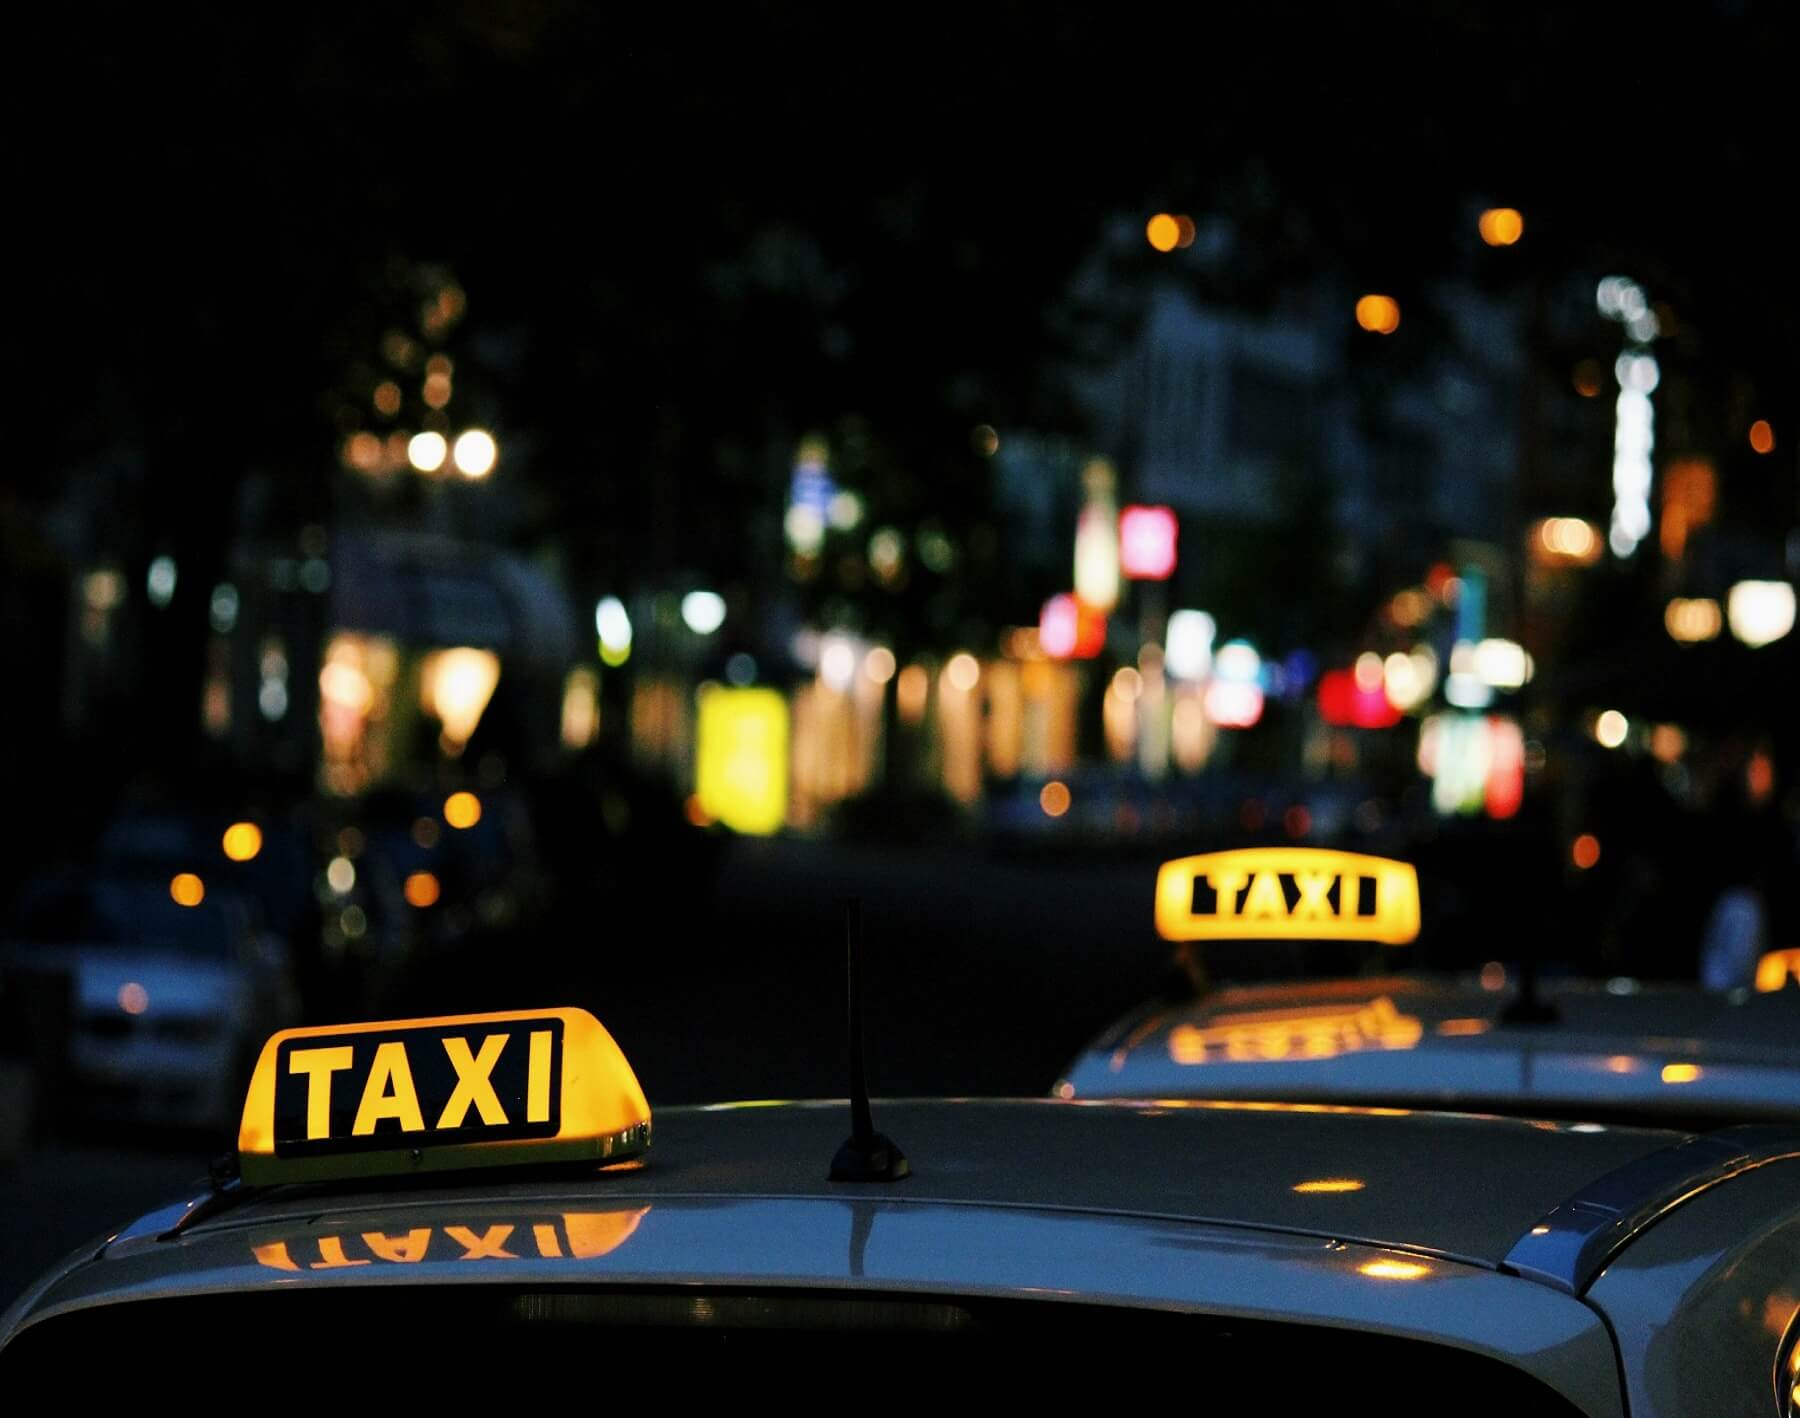 Taxis Hextable, Sherbets Mini Cabs